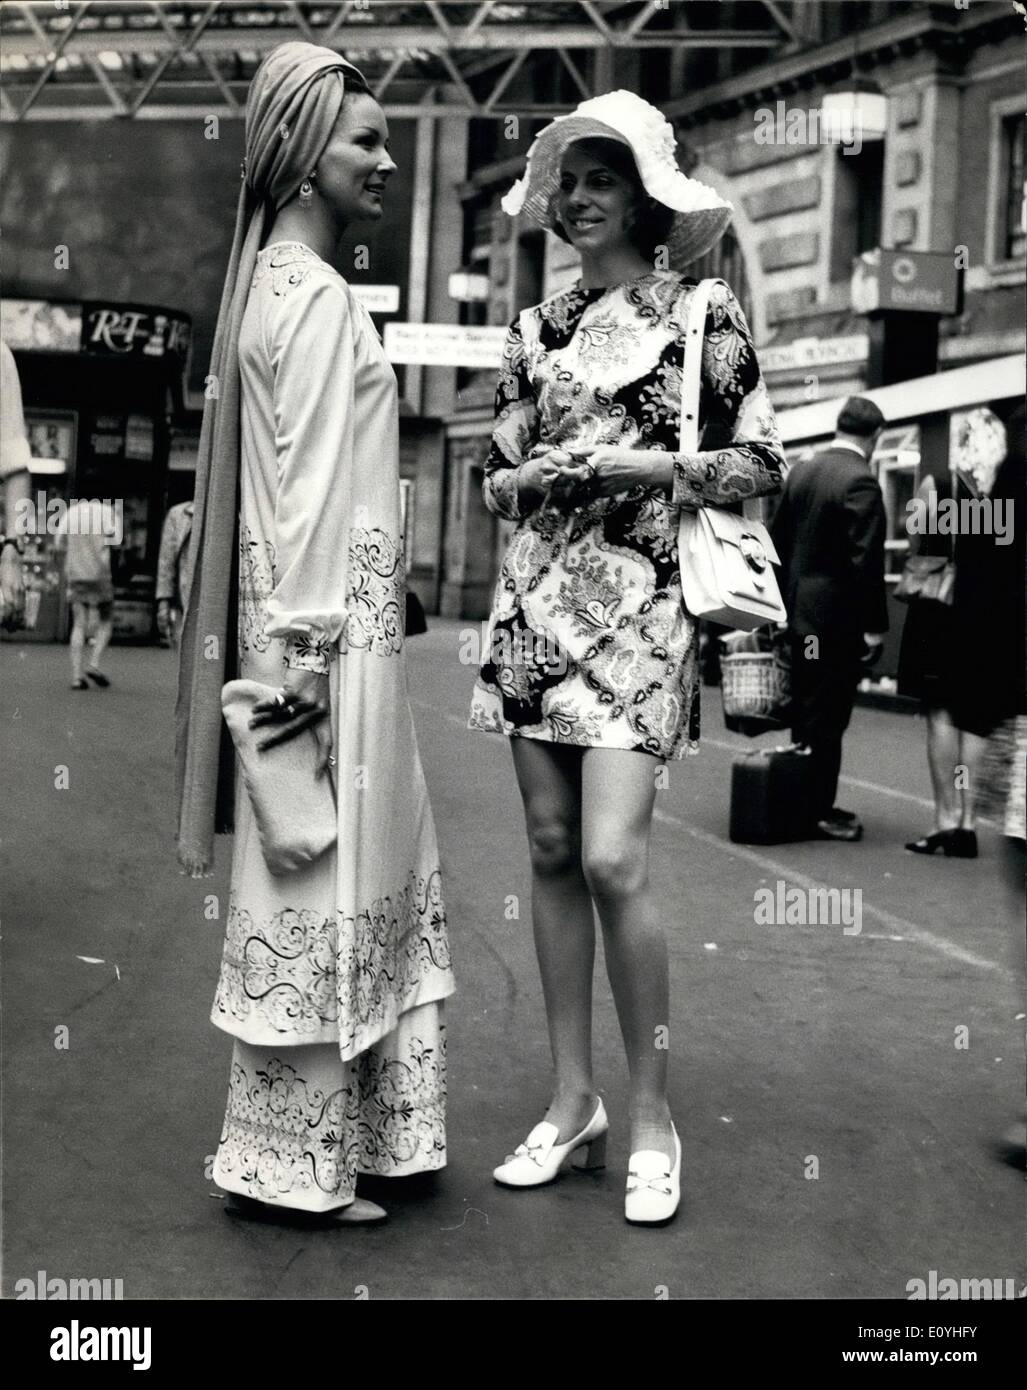 Jun. 06, 1970 - Gold Cup day at Ascot - Fashions leave from Waterloo station.: an eastern style outfit complete with turban is seen here worn by Mrs. T. Littlejohn Cook who is pictured with a friend Miss Josette Priest, both of Brazil, when they left Waterloo Station today for the Ascot Gold cup meeting. - Stock Image